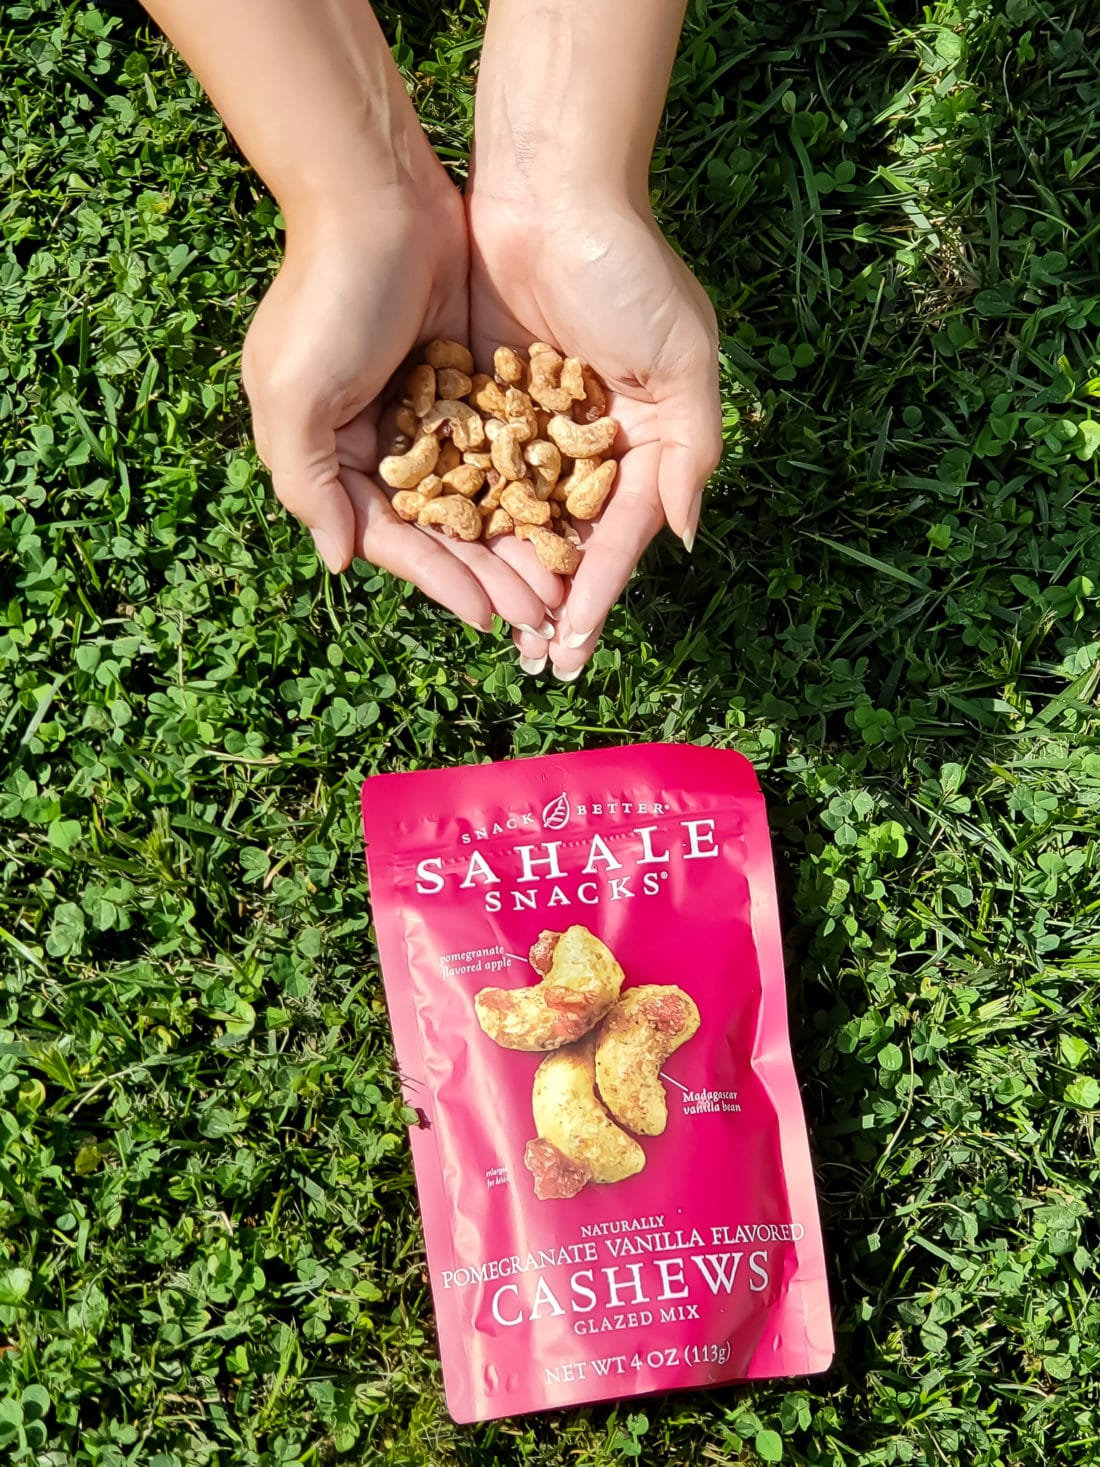 Sahale Snacks Pomegrante Vanilla Flavored Cashews. Snack easy with Sahale snacks, they are the delicious option that fit seemlessly into your everyday lives. Sahale Snacks use unique combinations and layers of flavor with real ingredients to elevate your everyday snacking experience.